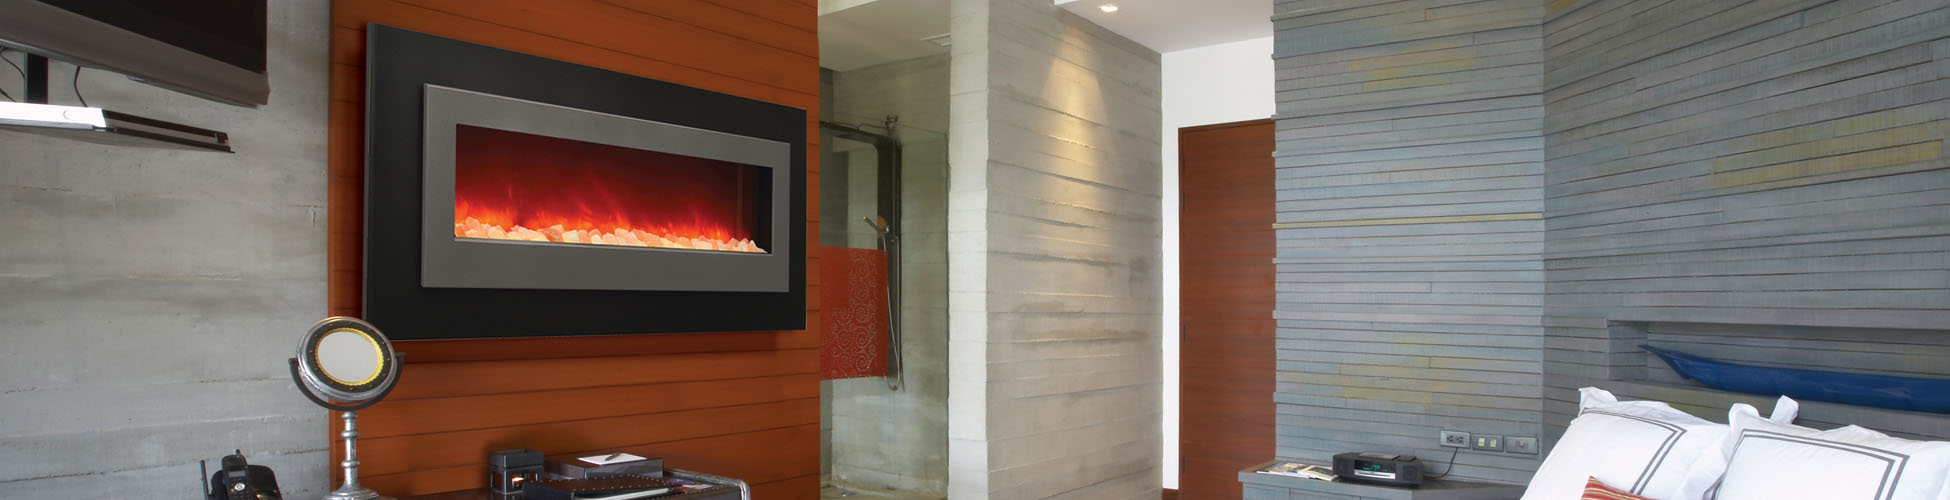 WM-FML-62 electric fireplace